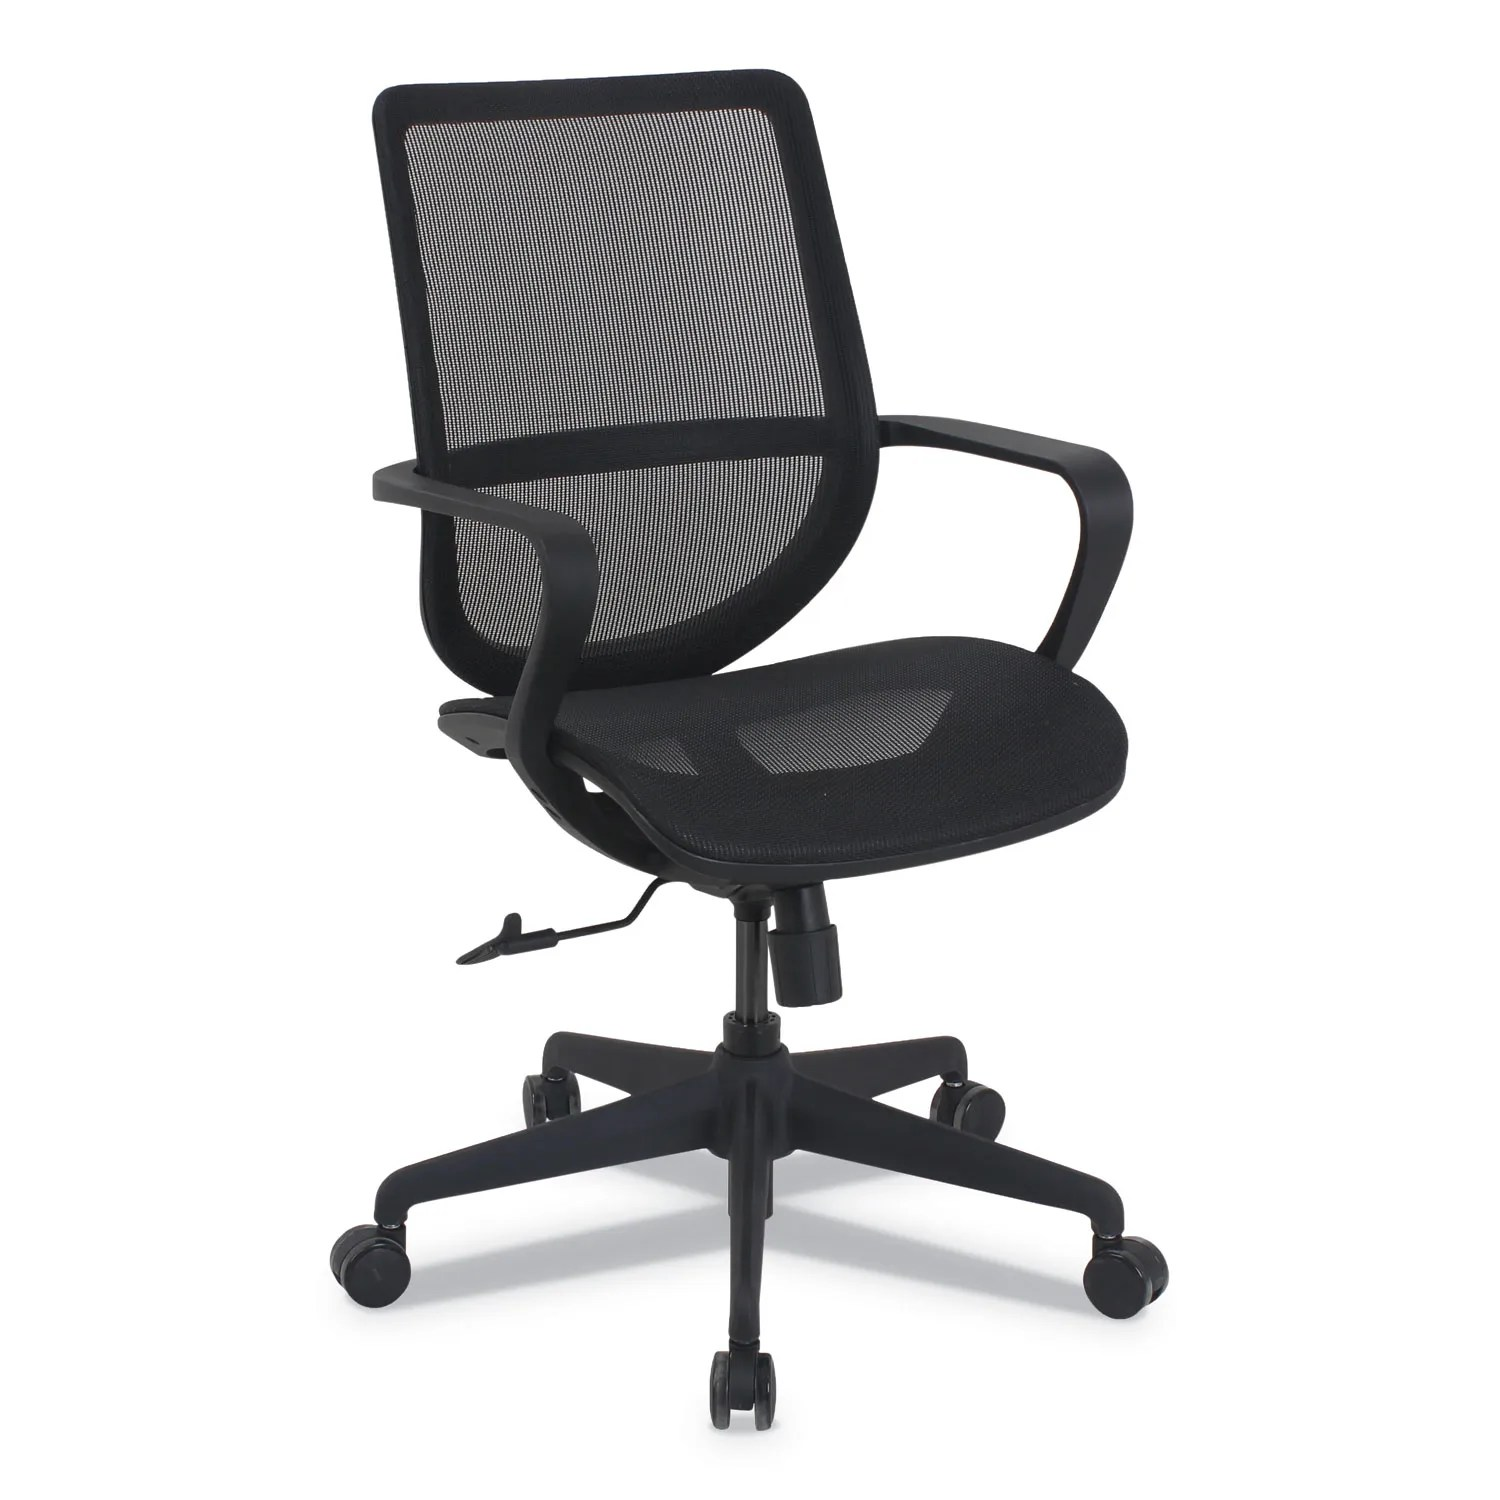 Alera Office Chairs Alera Kathy Ireland Office By Alera Macklin Series Mid Back All Mesh Office Chair